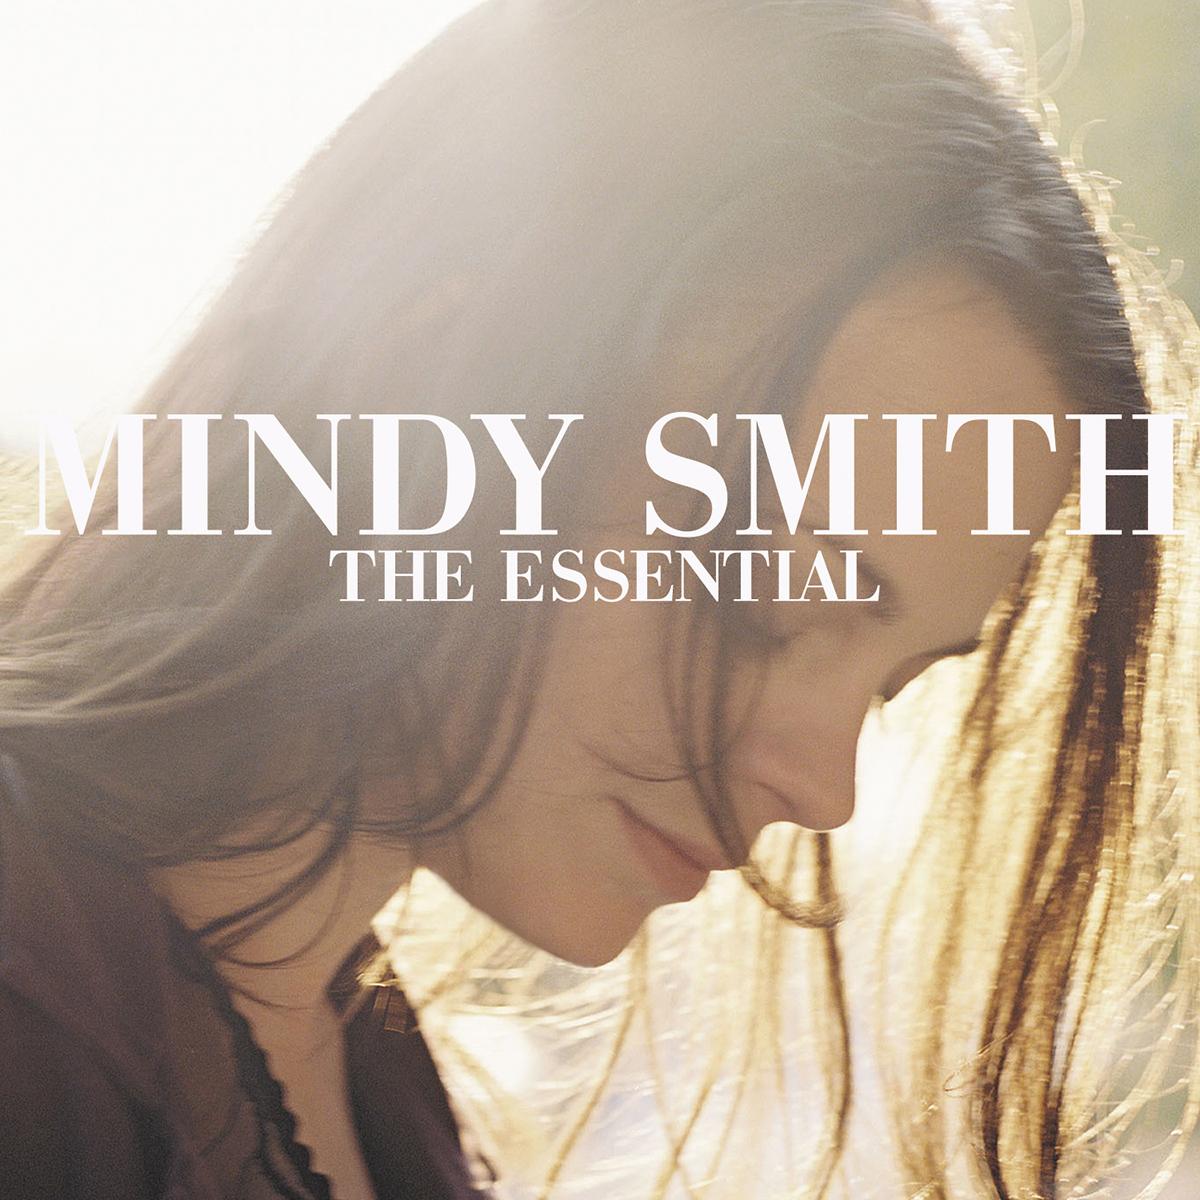 Mindy Smith - The Essential MP3 Download